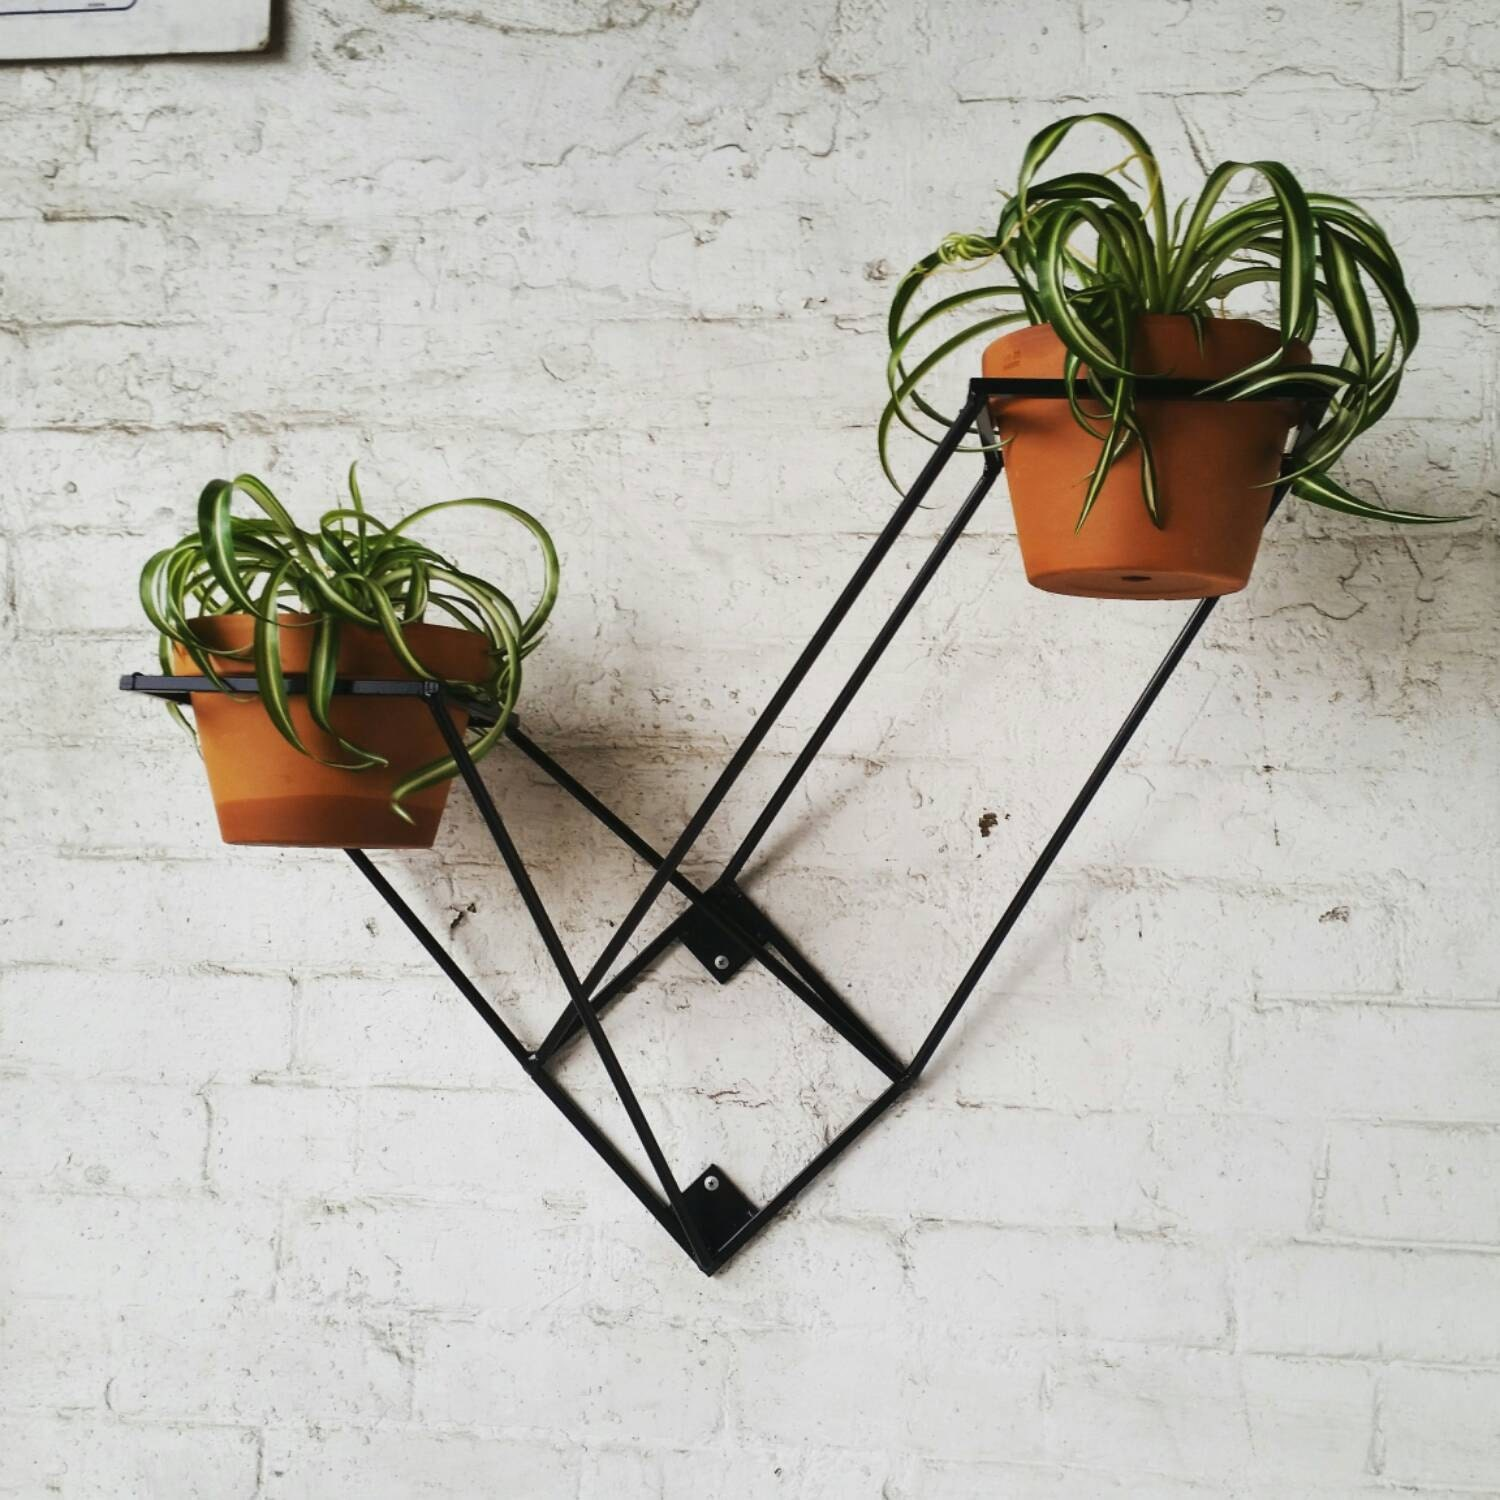 wall mounted plant stand. Black Bedroom Furniture Sets. Home Design Ideas